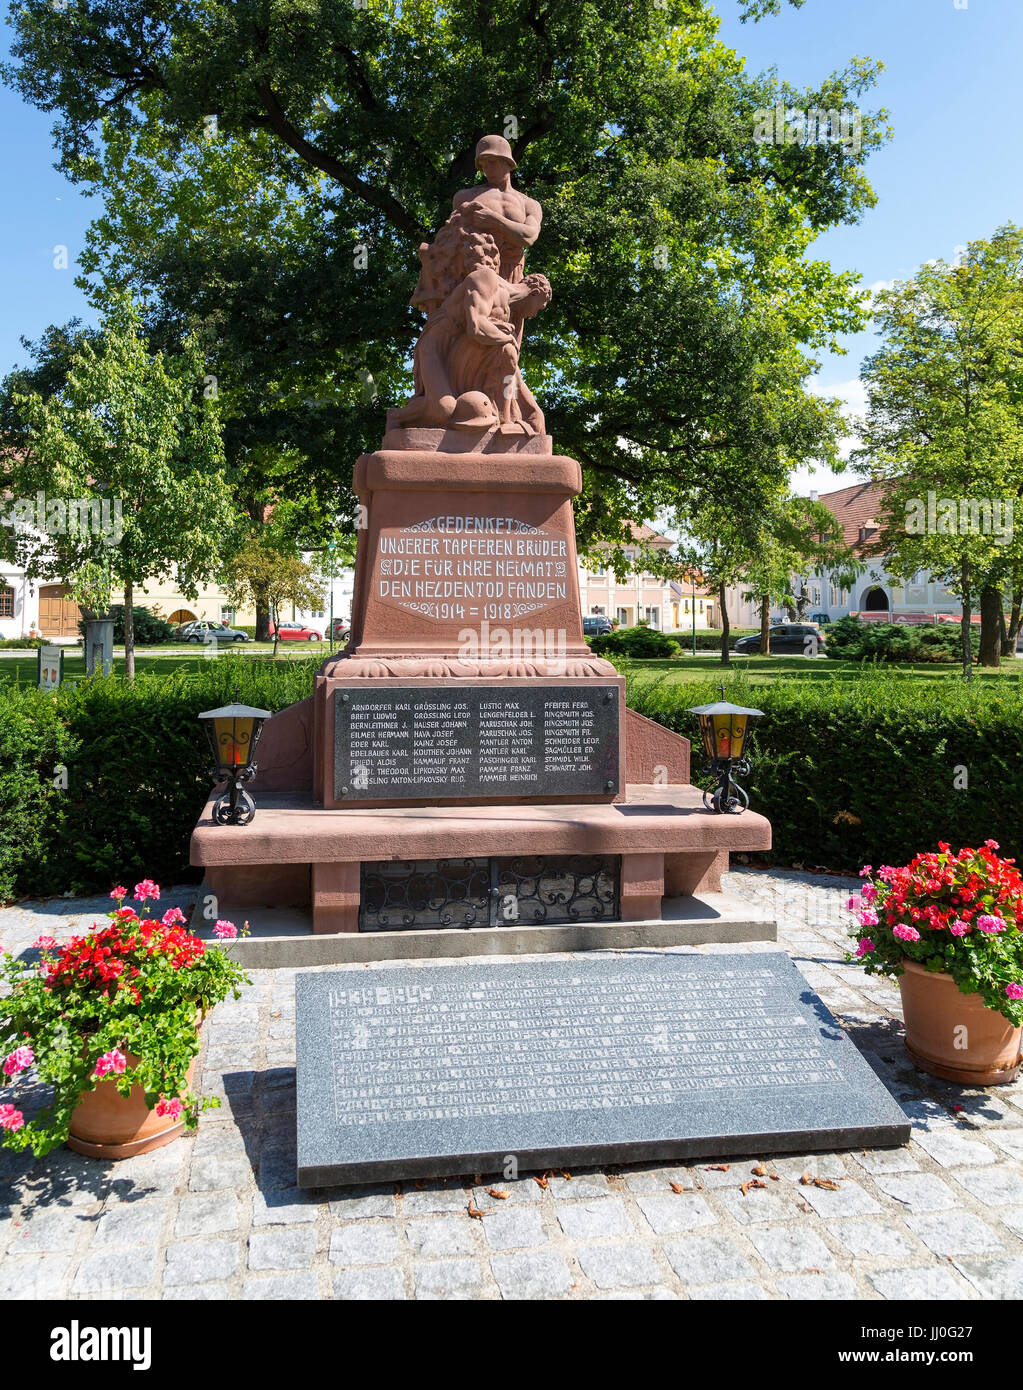 Monument for war favour in quarrel village in the Kamp, forest quarter, Lower Austria, Austria - World Being Memorial Stock Photo